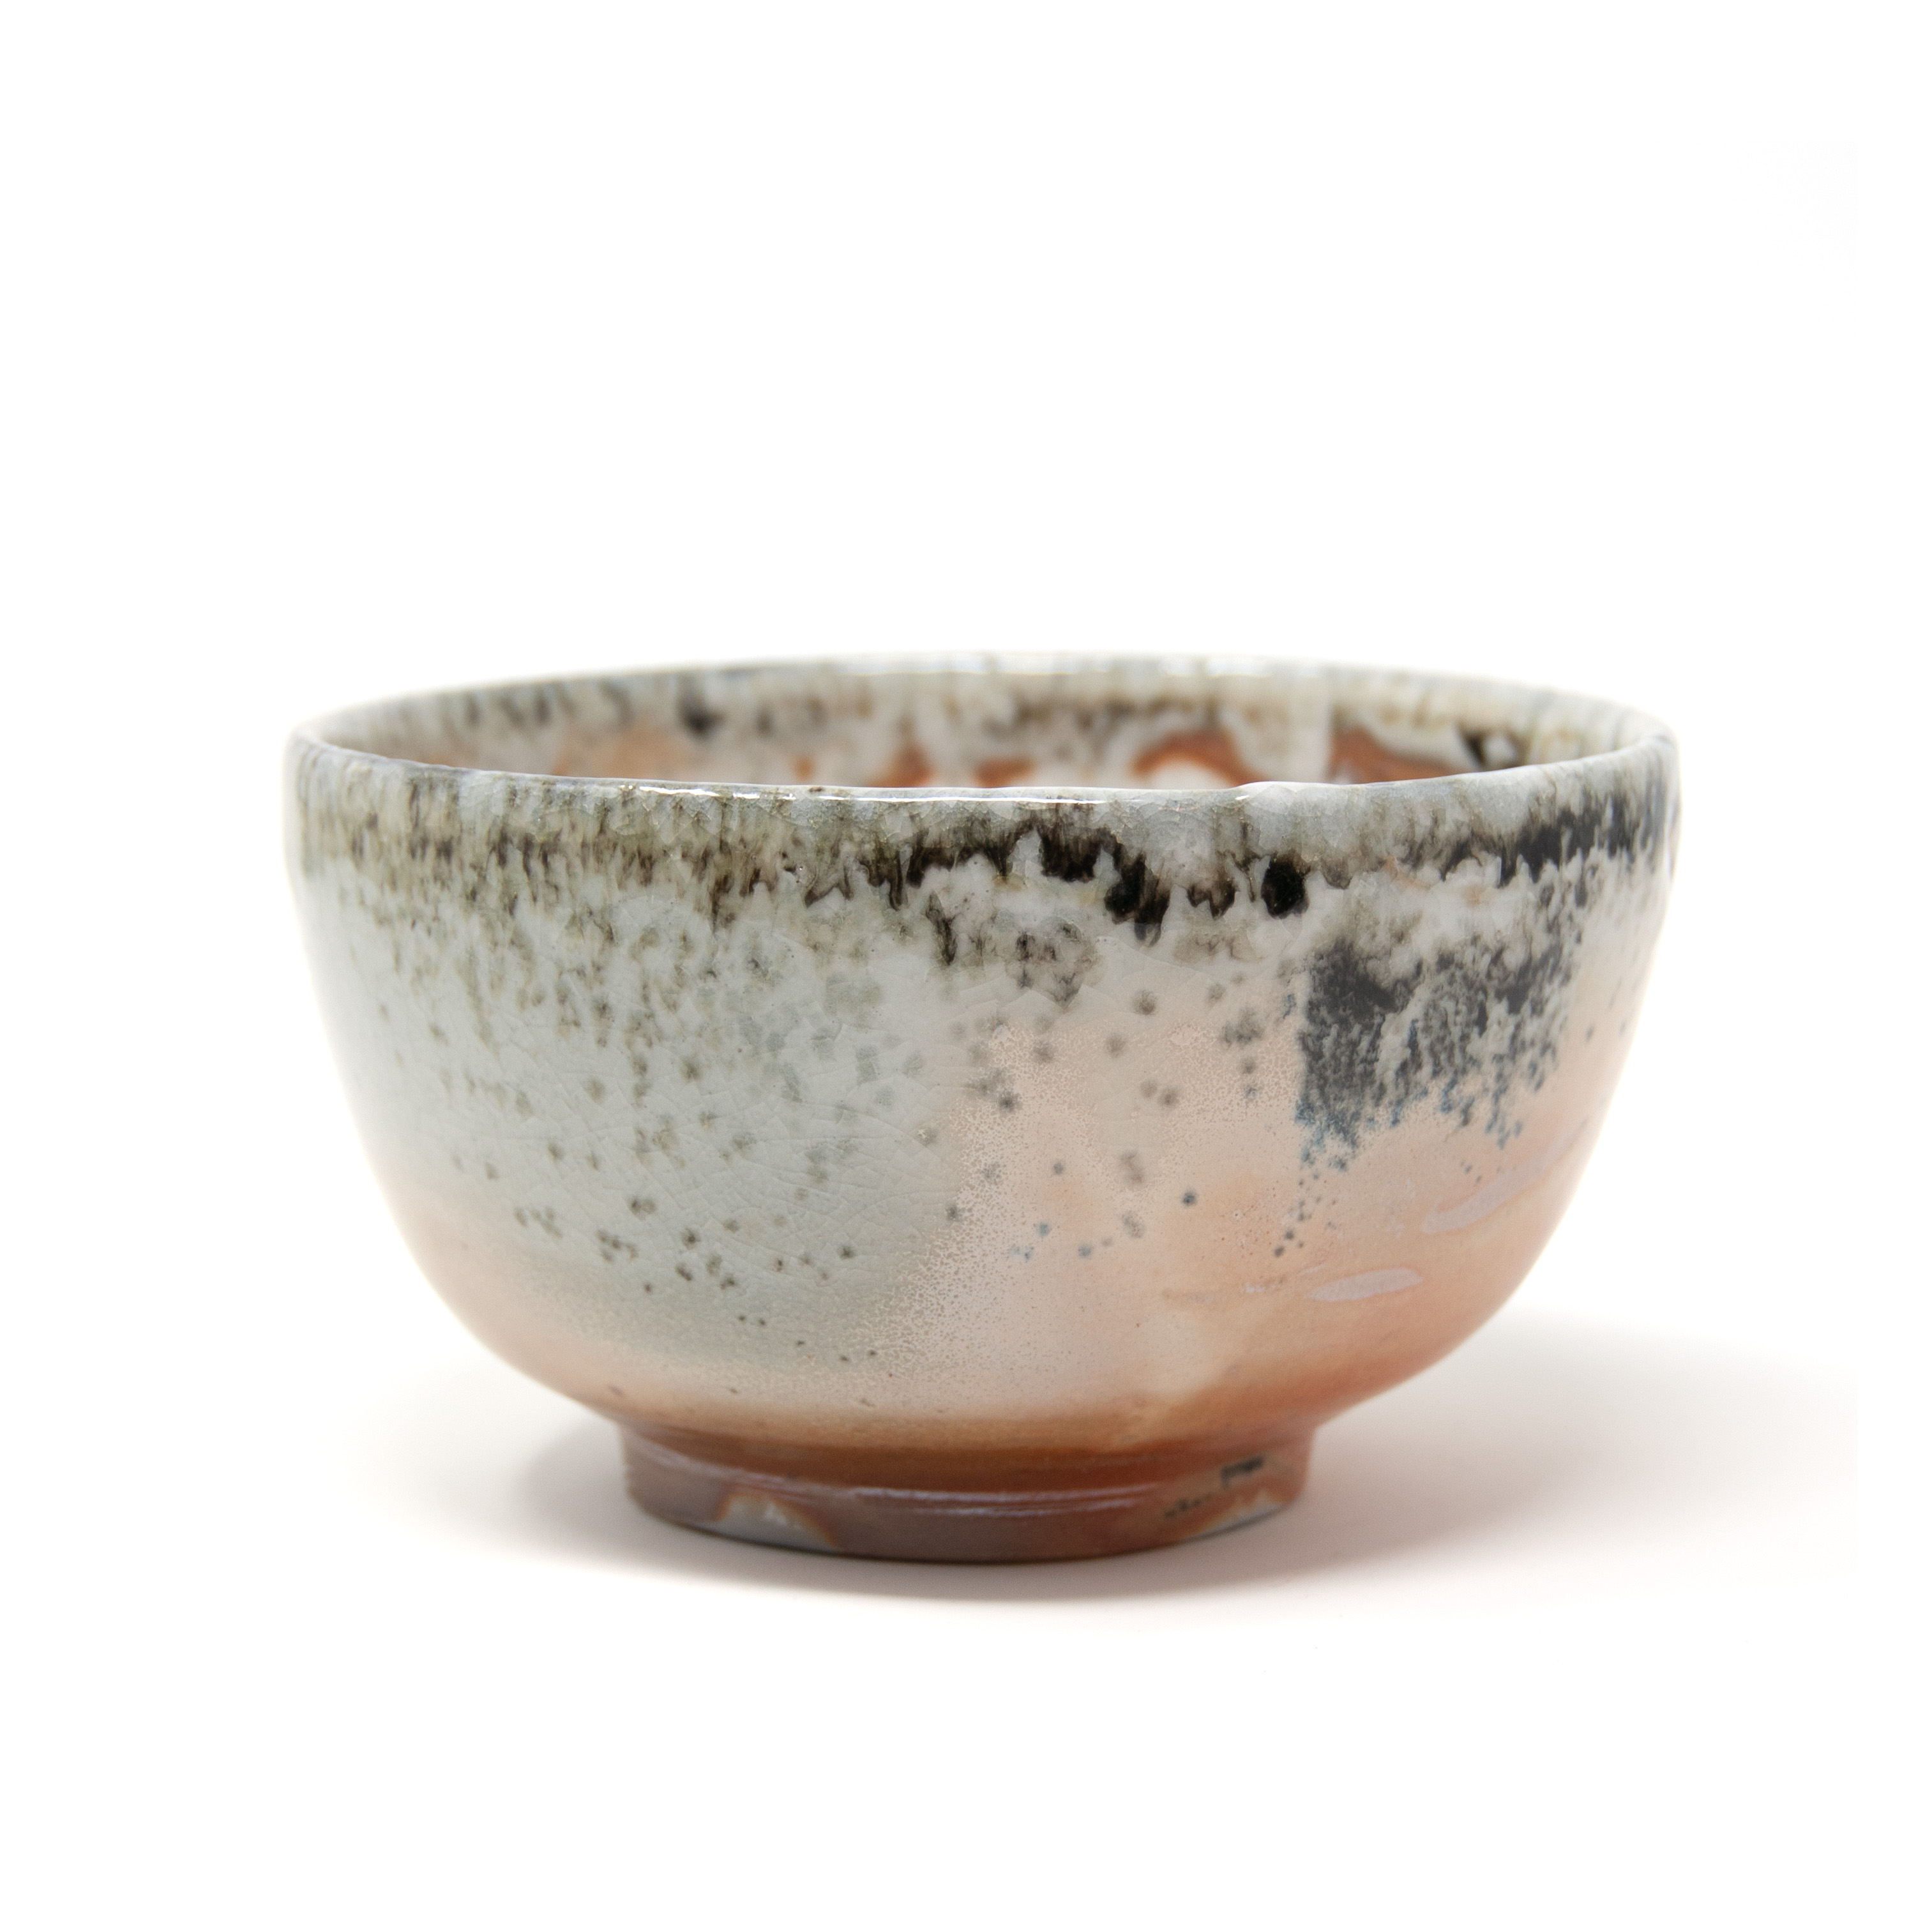 Wood fired, shino and lavender ash glazed bowl